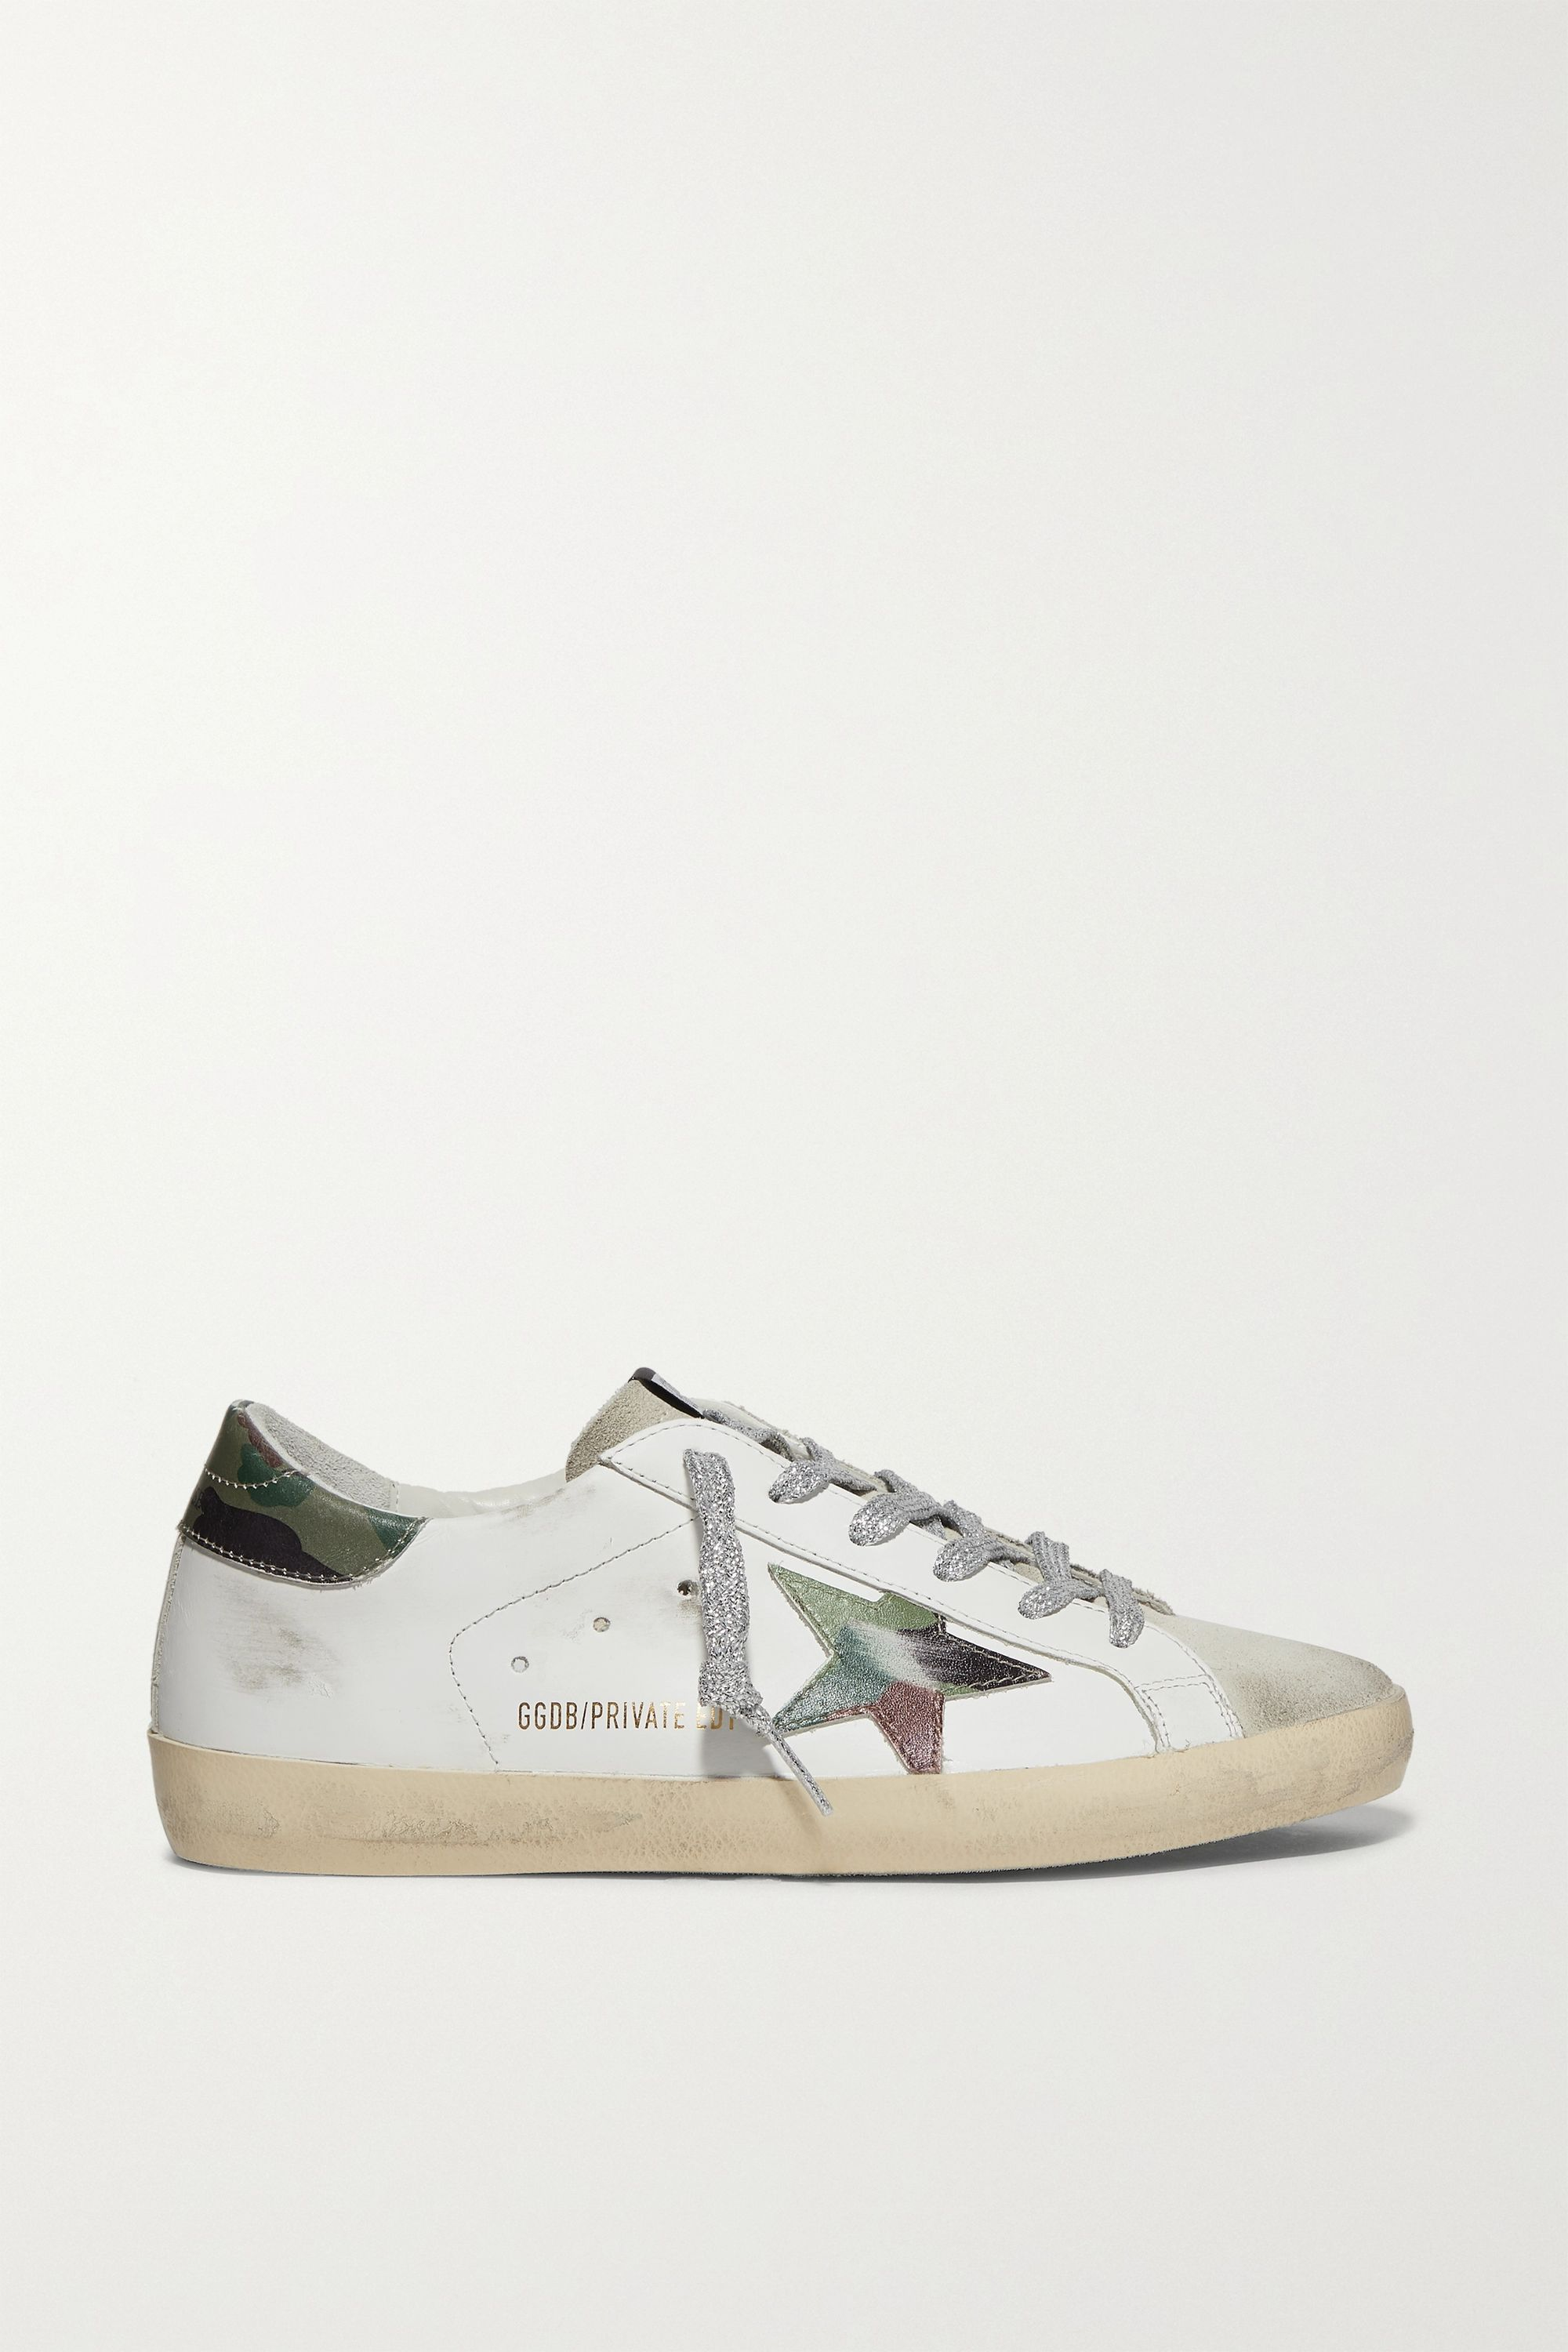 Golden Goose Superstar distressed printed leather and suede sneakers